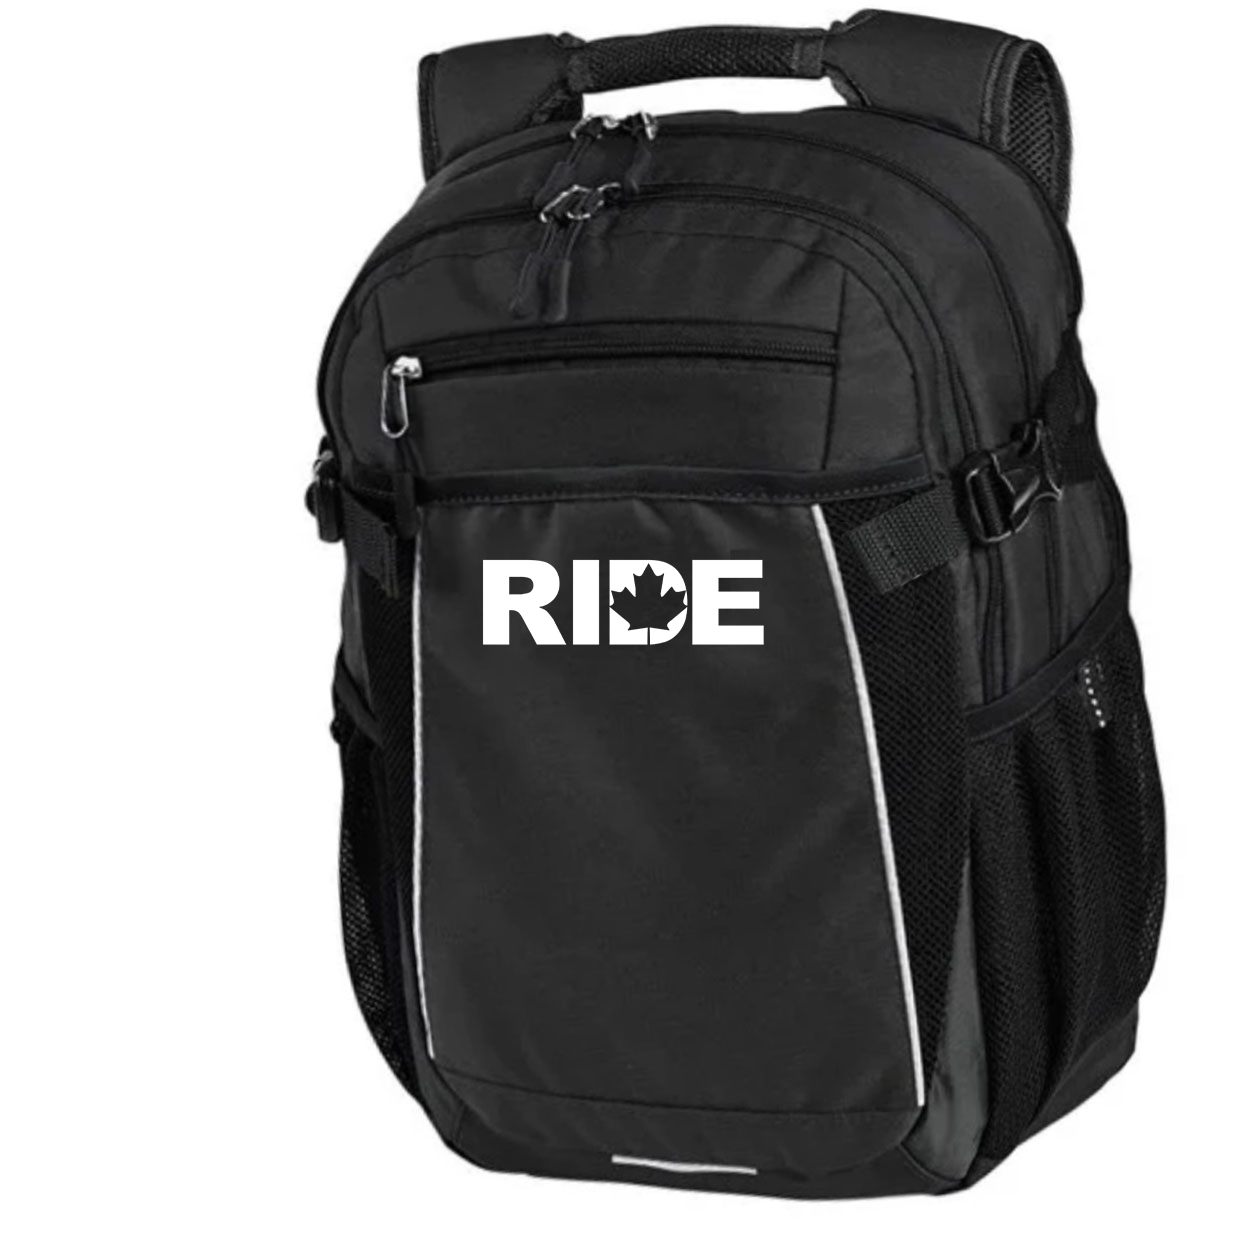 Ride Canada Classic Pro Pioneer Backpack Black (White Logo)